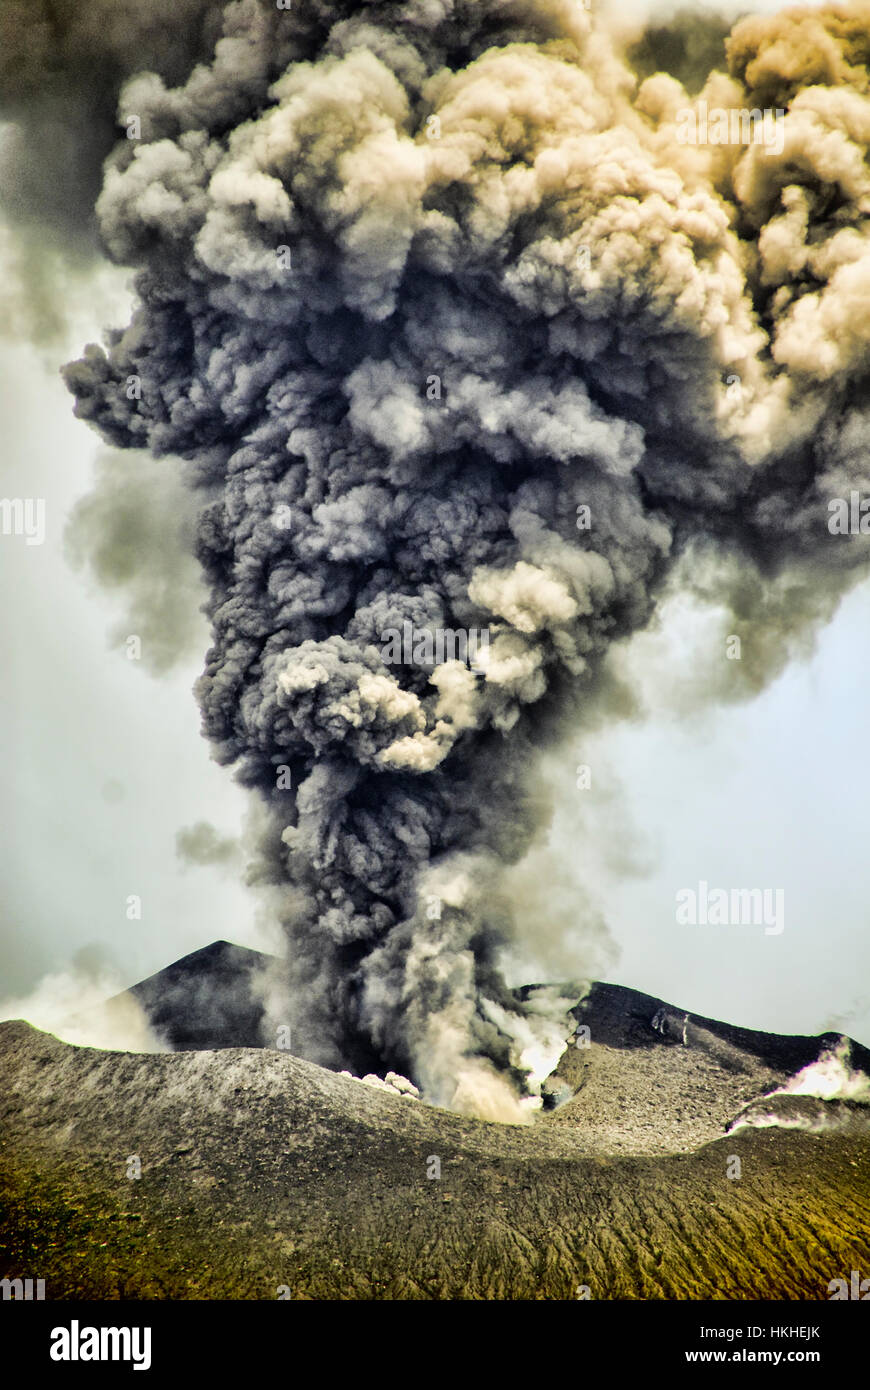 A view of the caldara of Mt. Tavurvur volcano when it is erupting. This is near the town of Rabaul, Papua New Guinea. - Stock Image